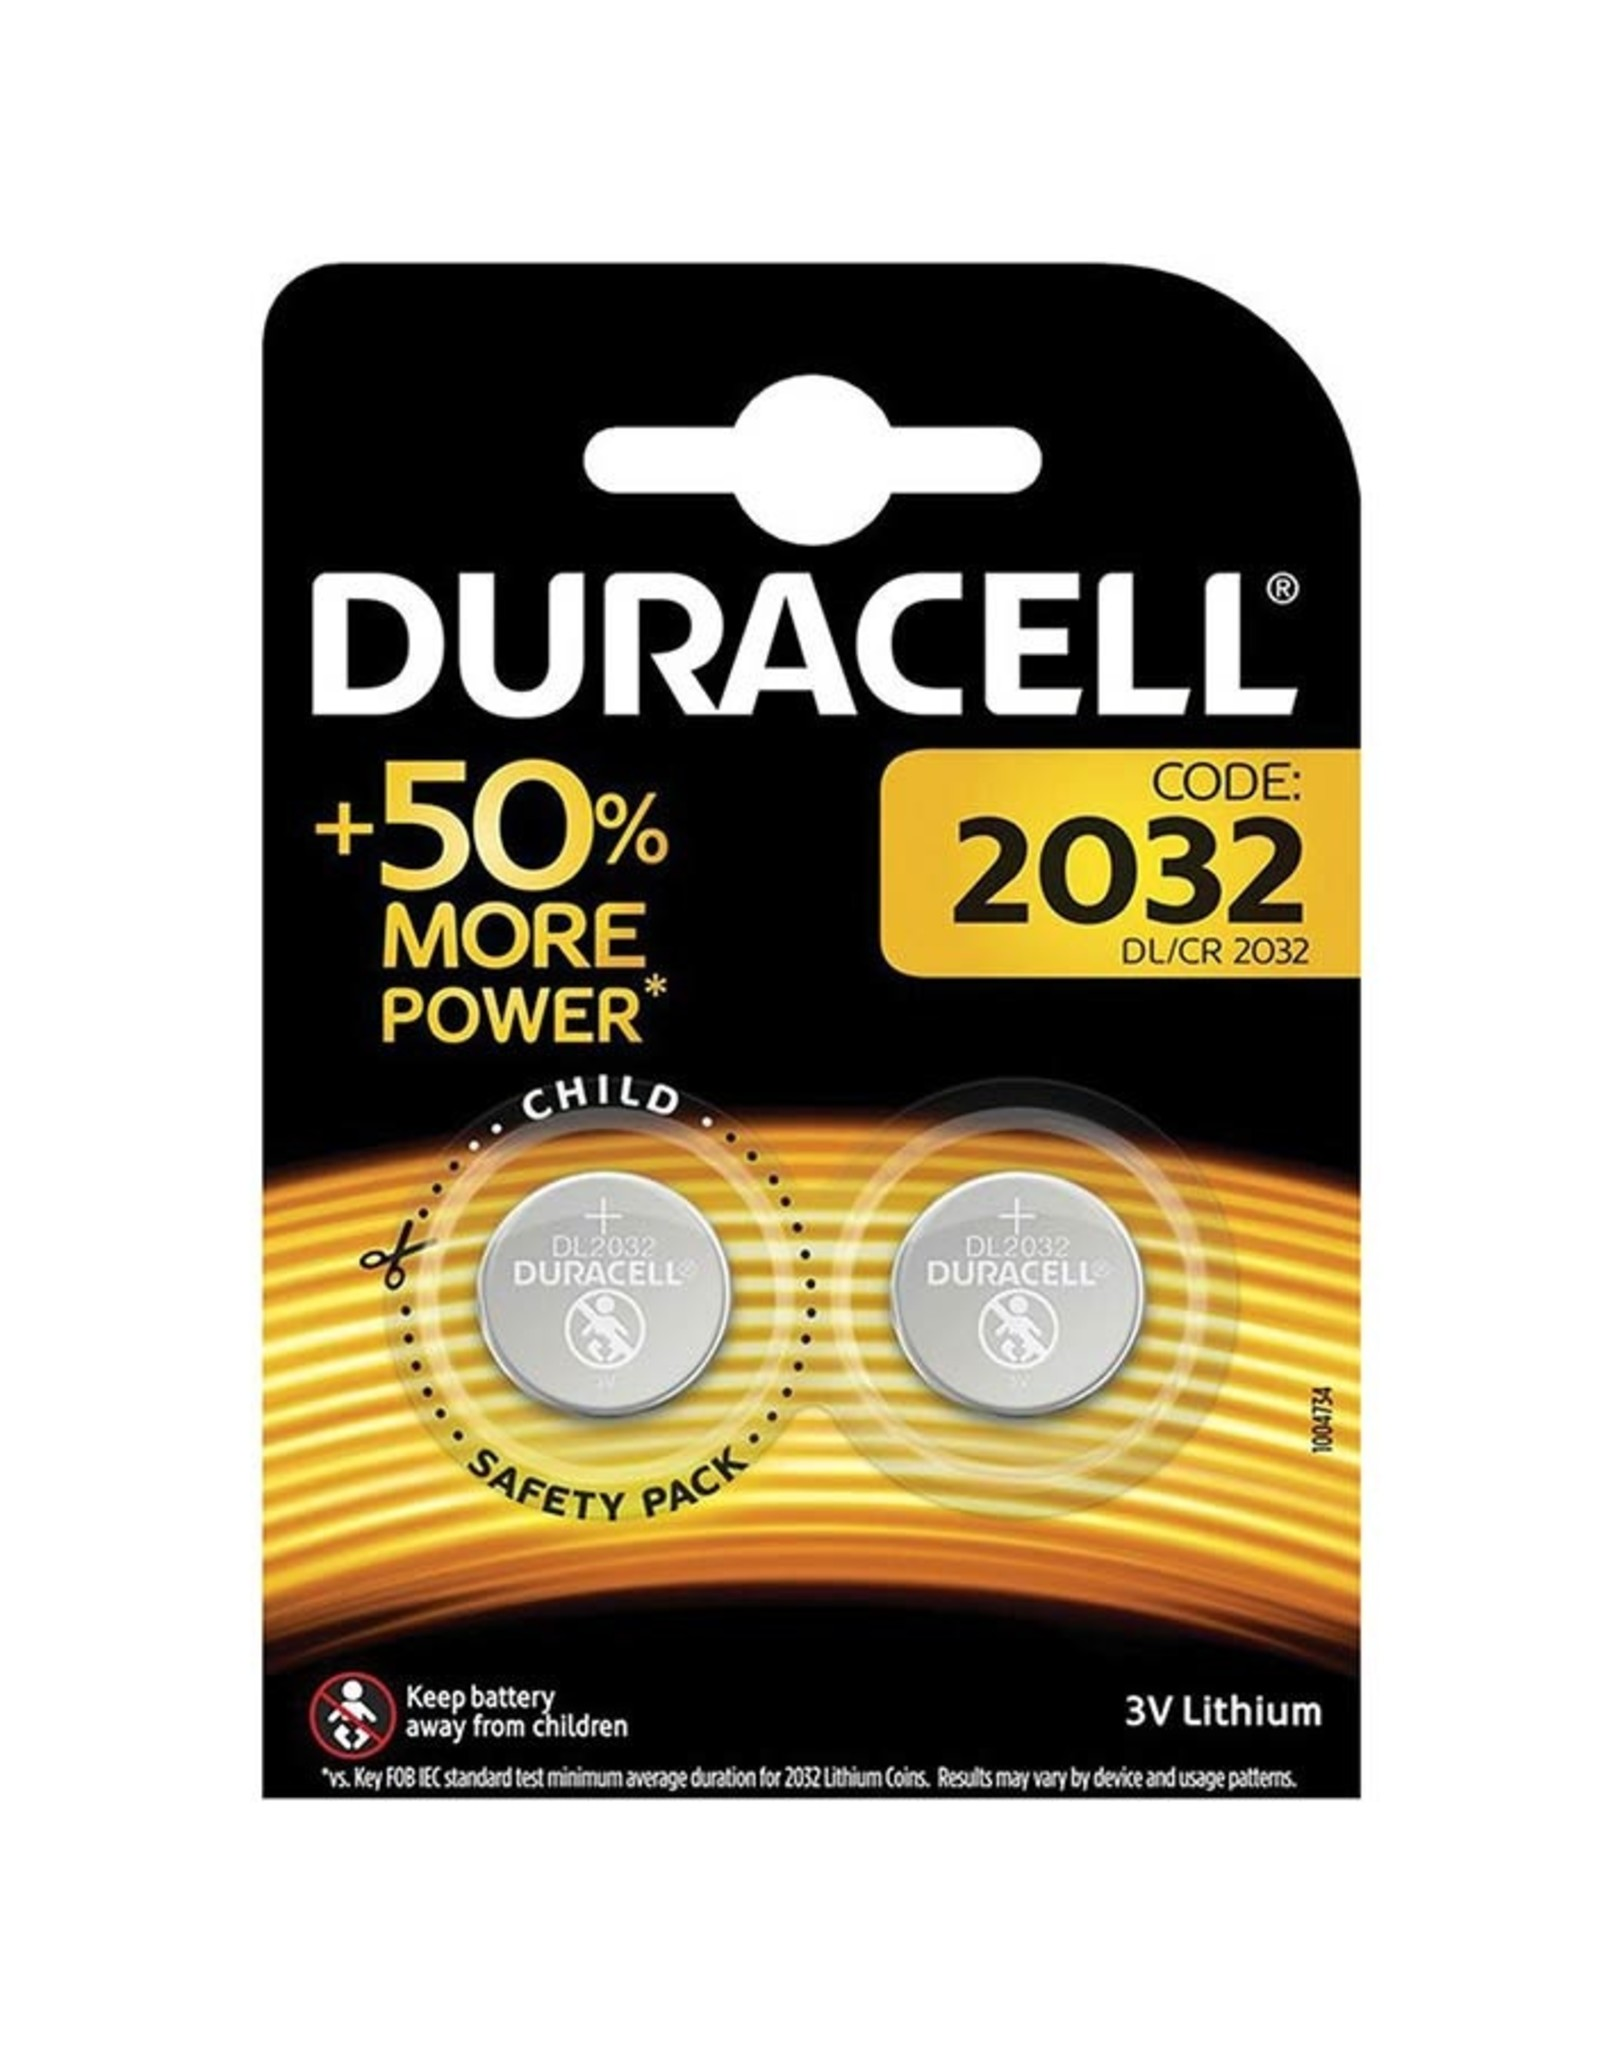 Duracell Duracell battery CR2032, 3v